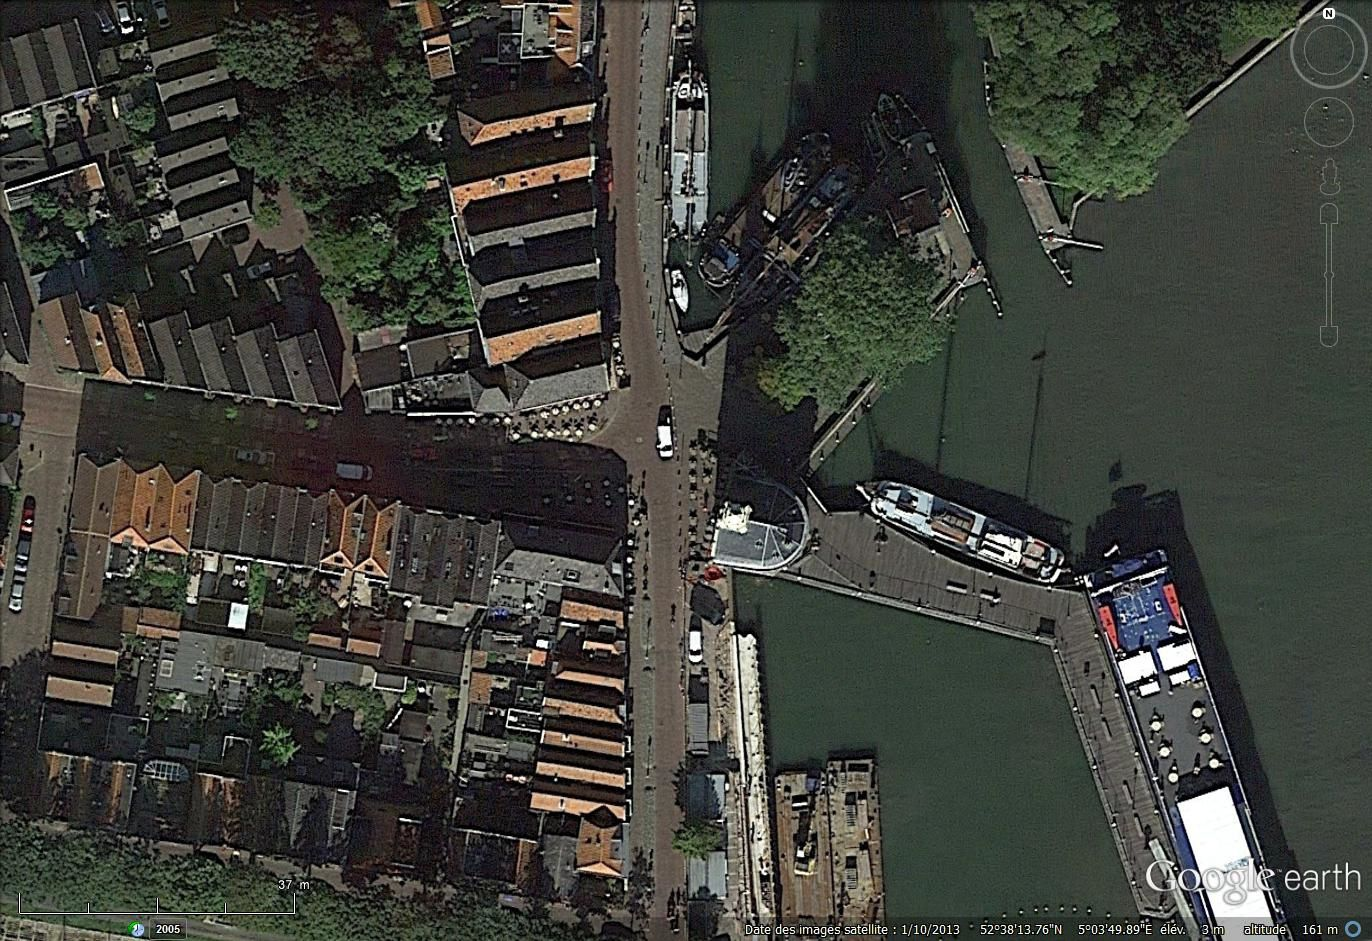 Hoorn sous l'oeil de Google earth